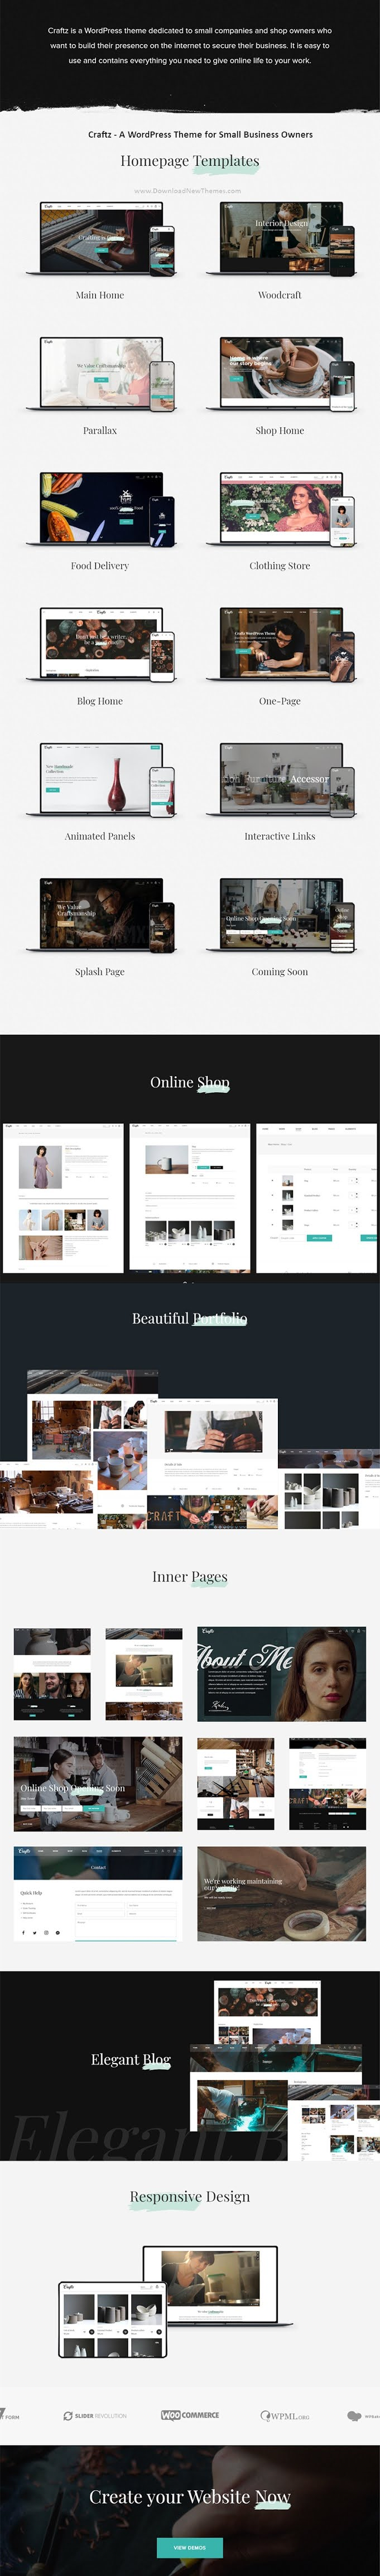 WordPress Theme for Small Business Owners